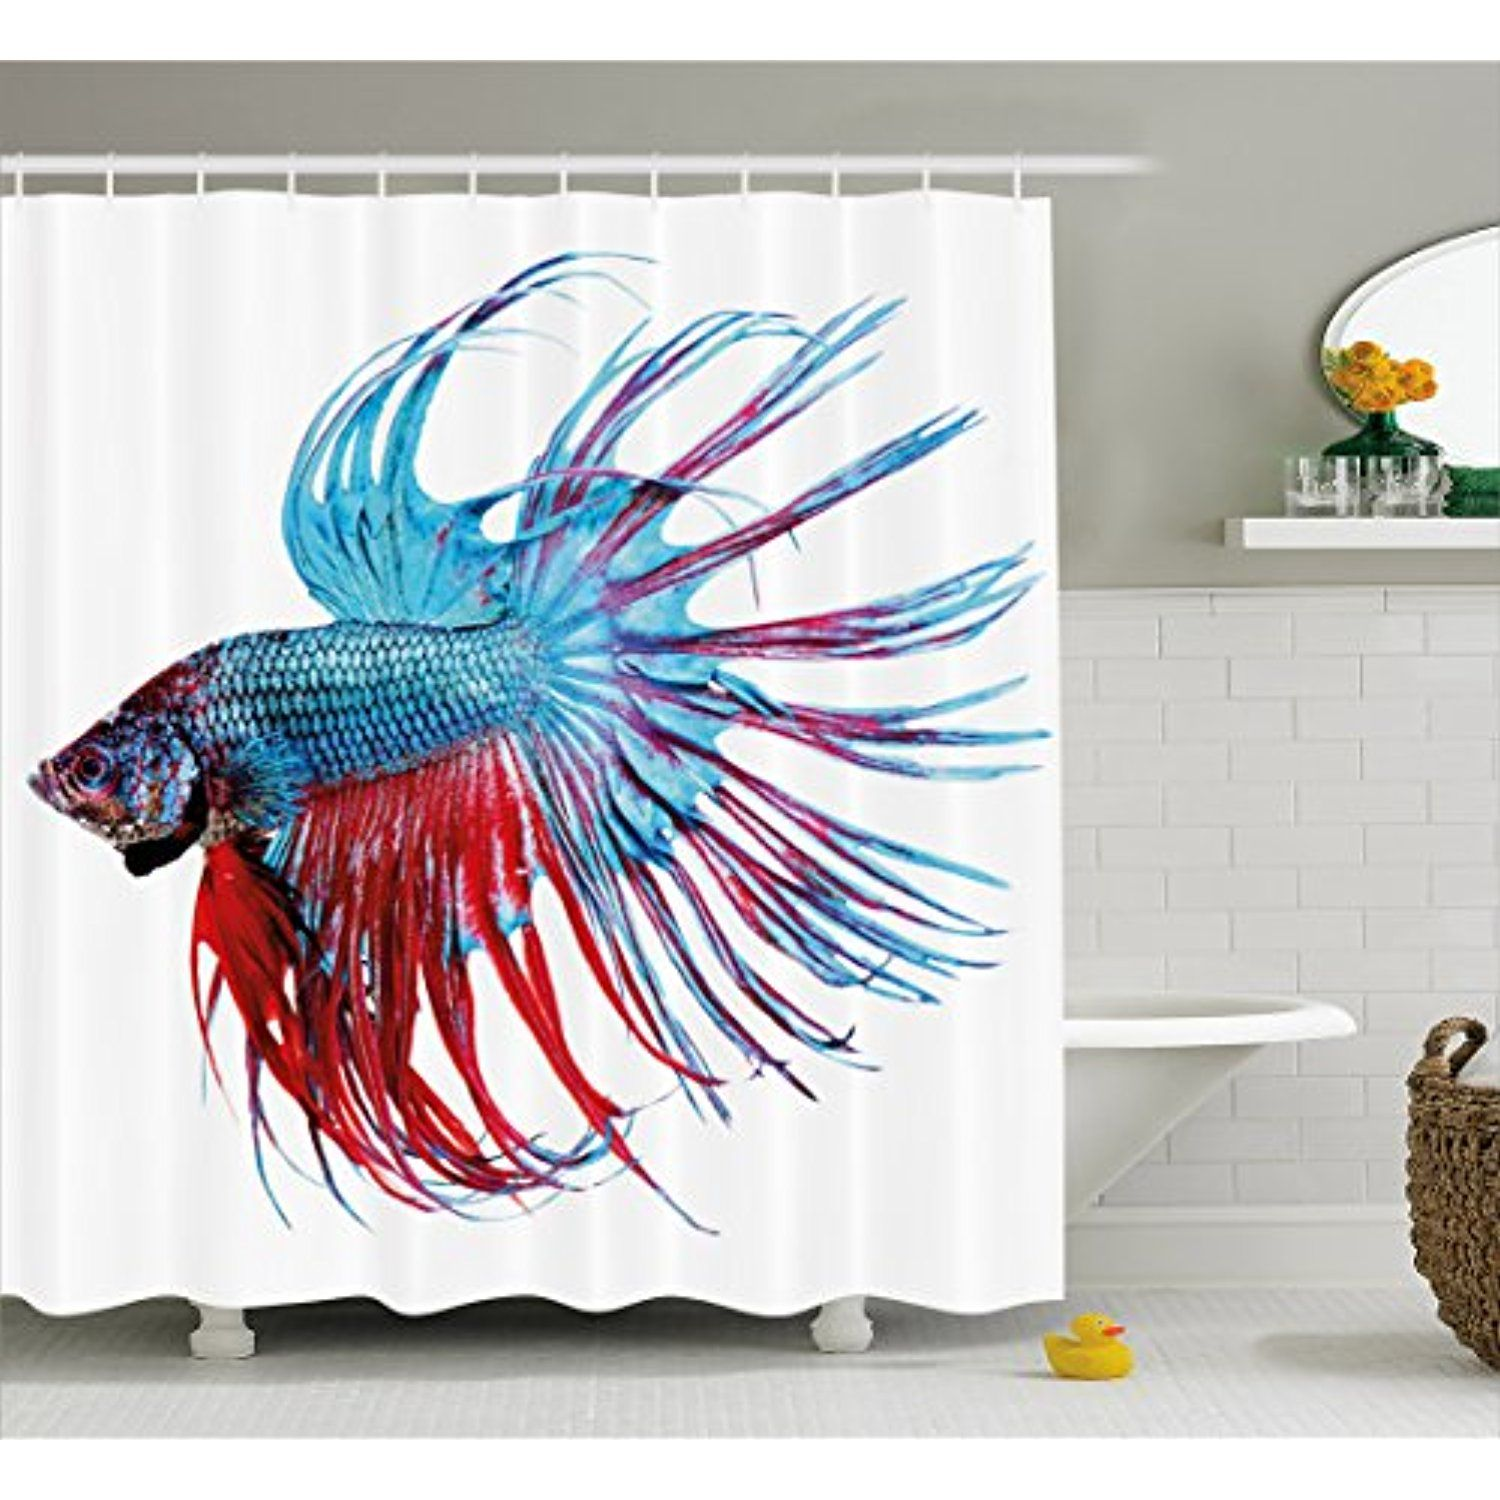 Aquarium Shower Curtain By Lunarable Fantastic Betta Fish Close Up Dragon With Fringy Tail